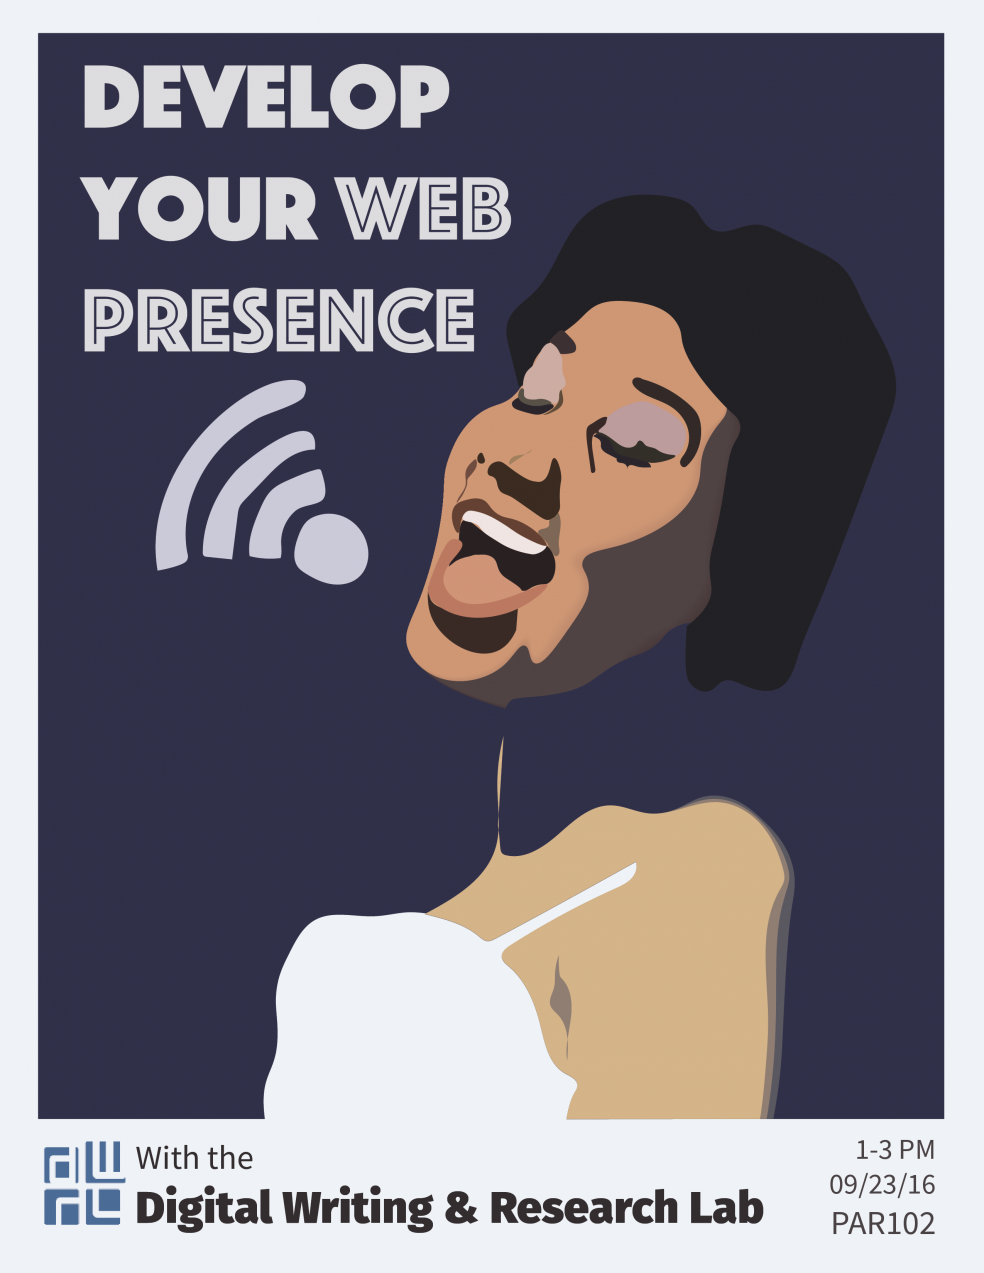 Flyer for web presence workshop hosted in the DWRL; stylised image of a brown-skinned woman against a purple background, with the words 'Develop your web presence'. Friday, Sept 23, 1-3pm, PAR 104